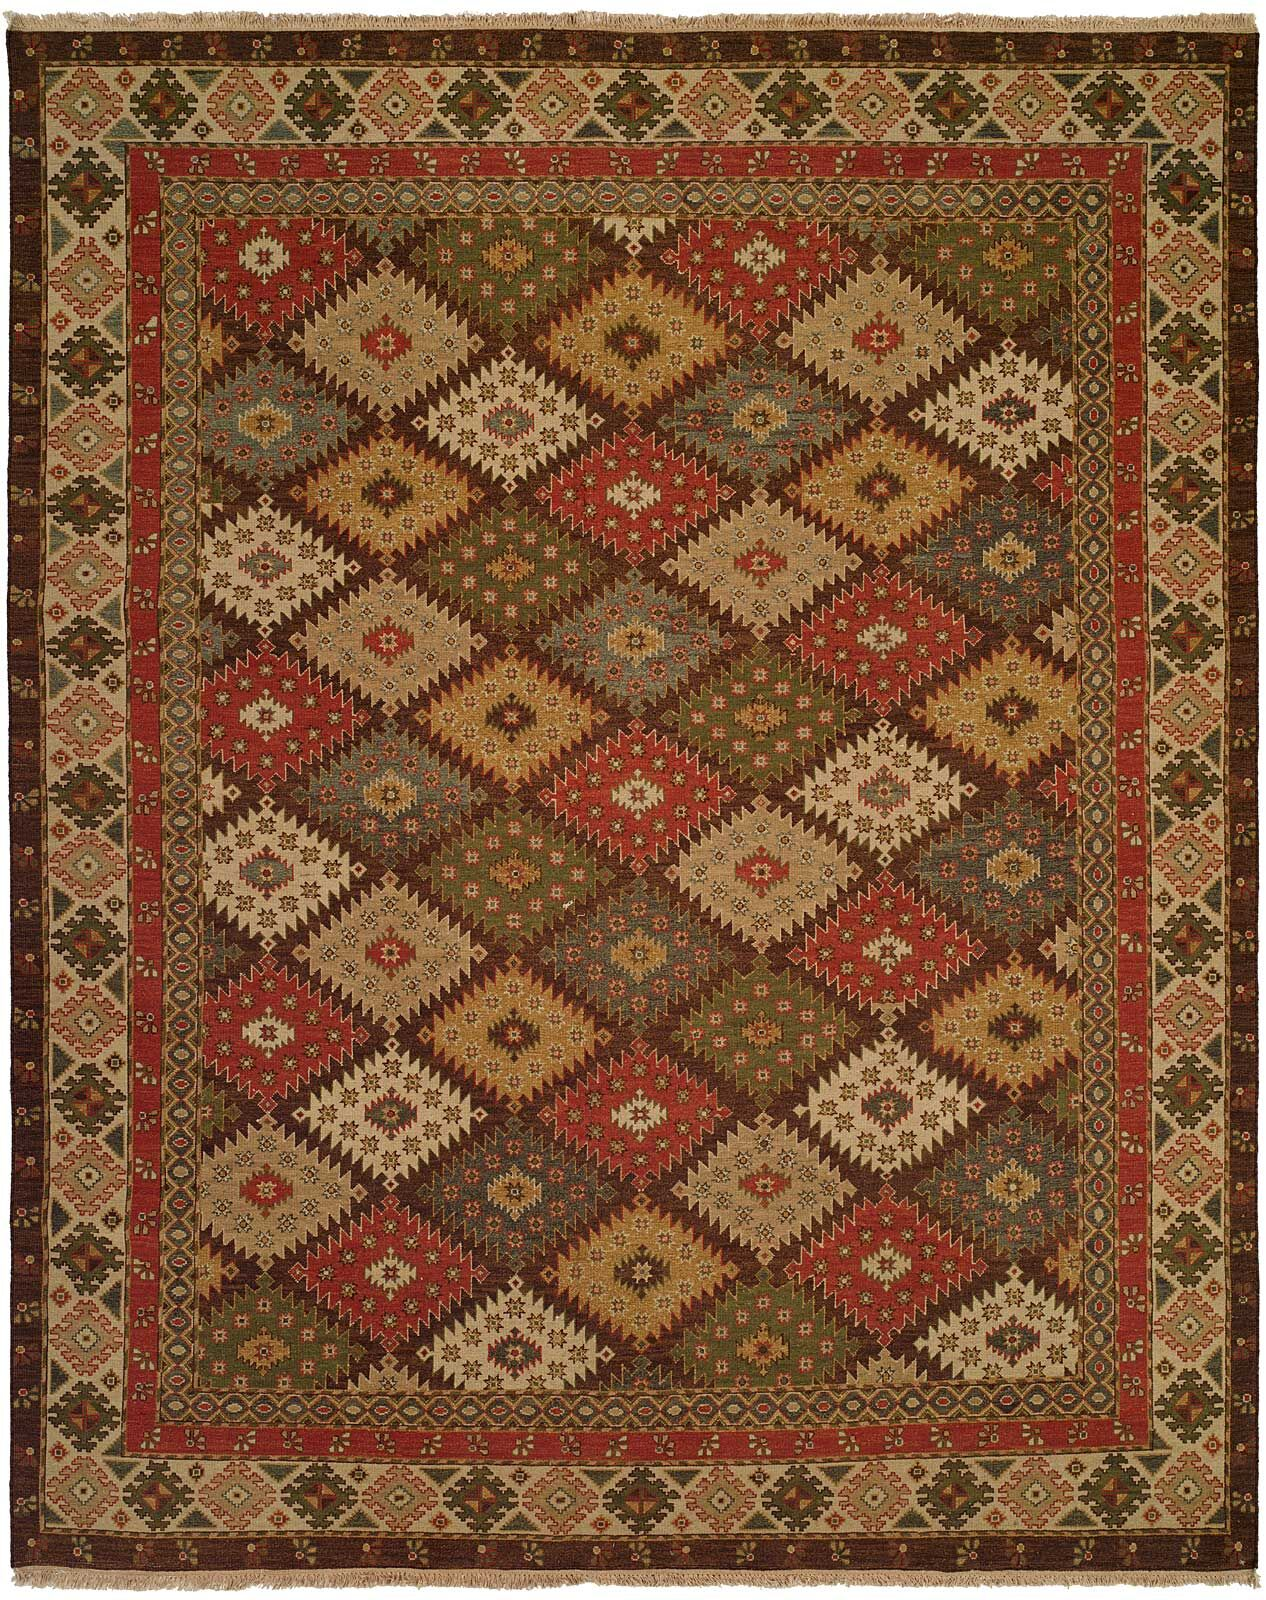 Qasr Hand-Woven Red/Brown Area Rug Rug Size: Rectangle 8' x 10'